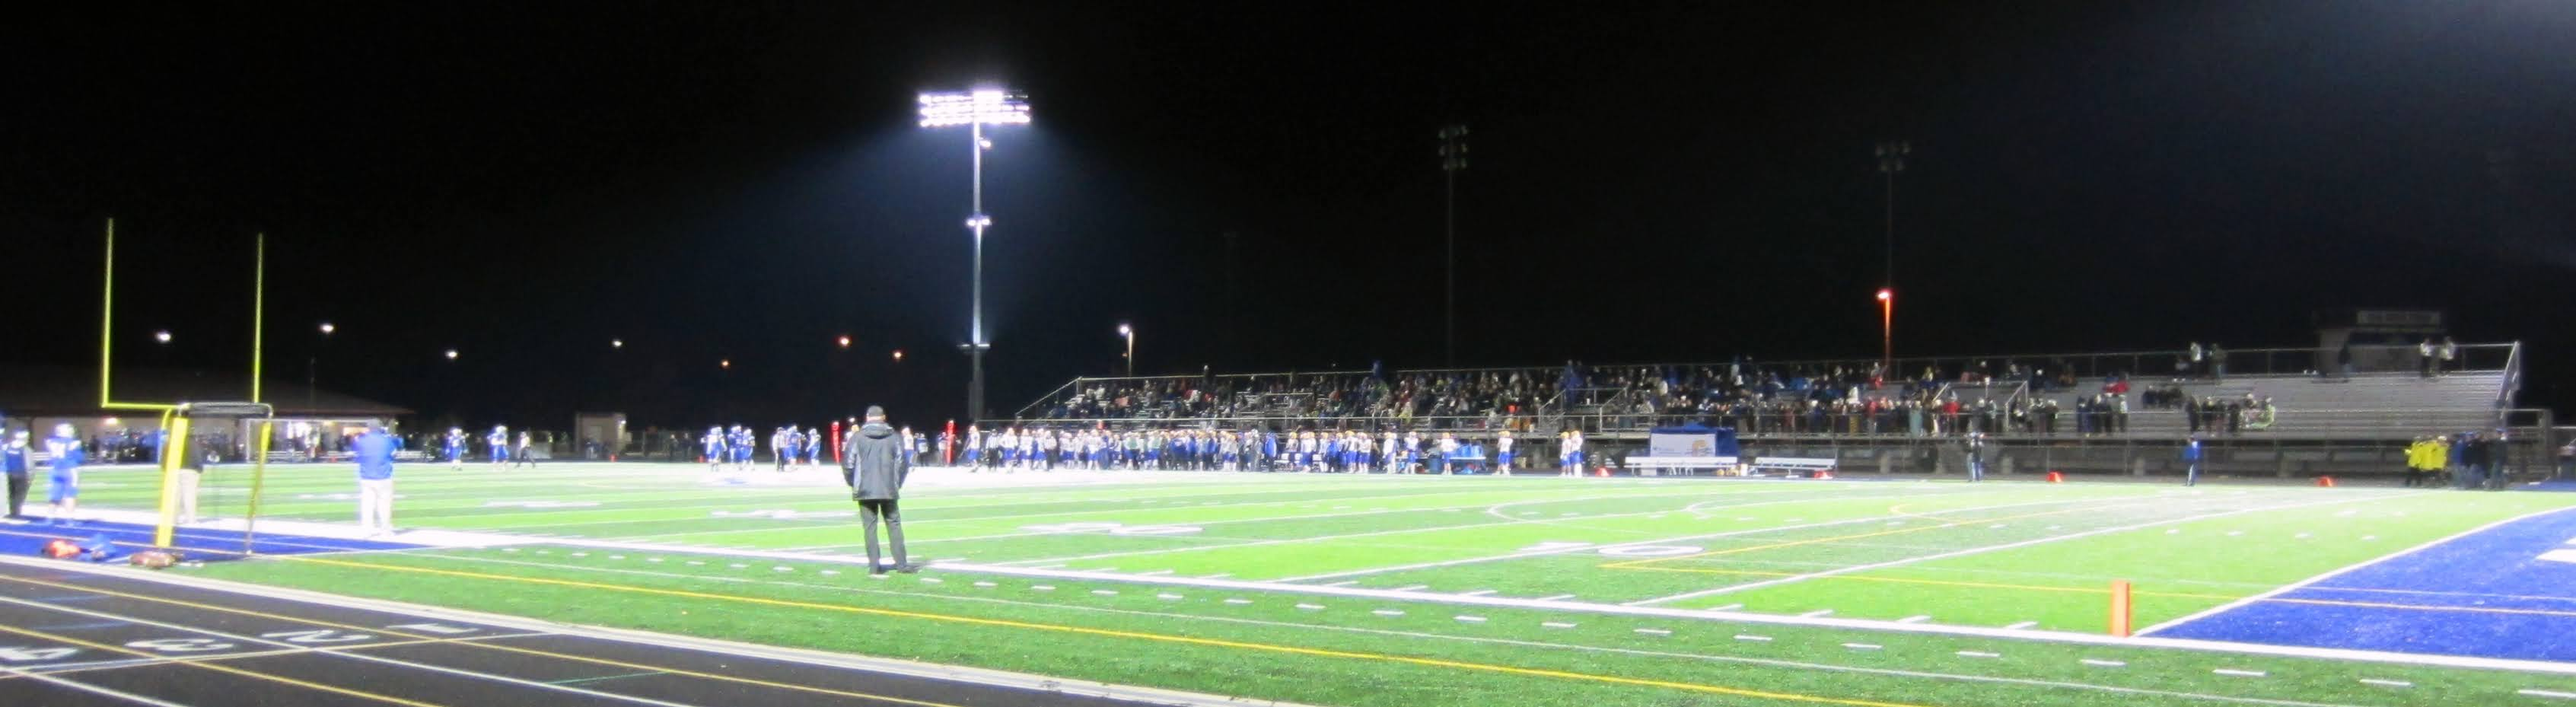 A view towards the away bleachers at Reynolds Royals Stadium, Fishers, IN